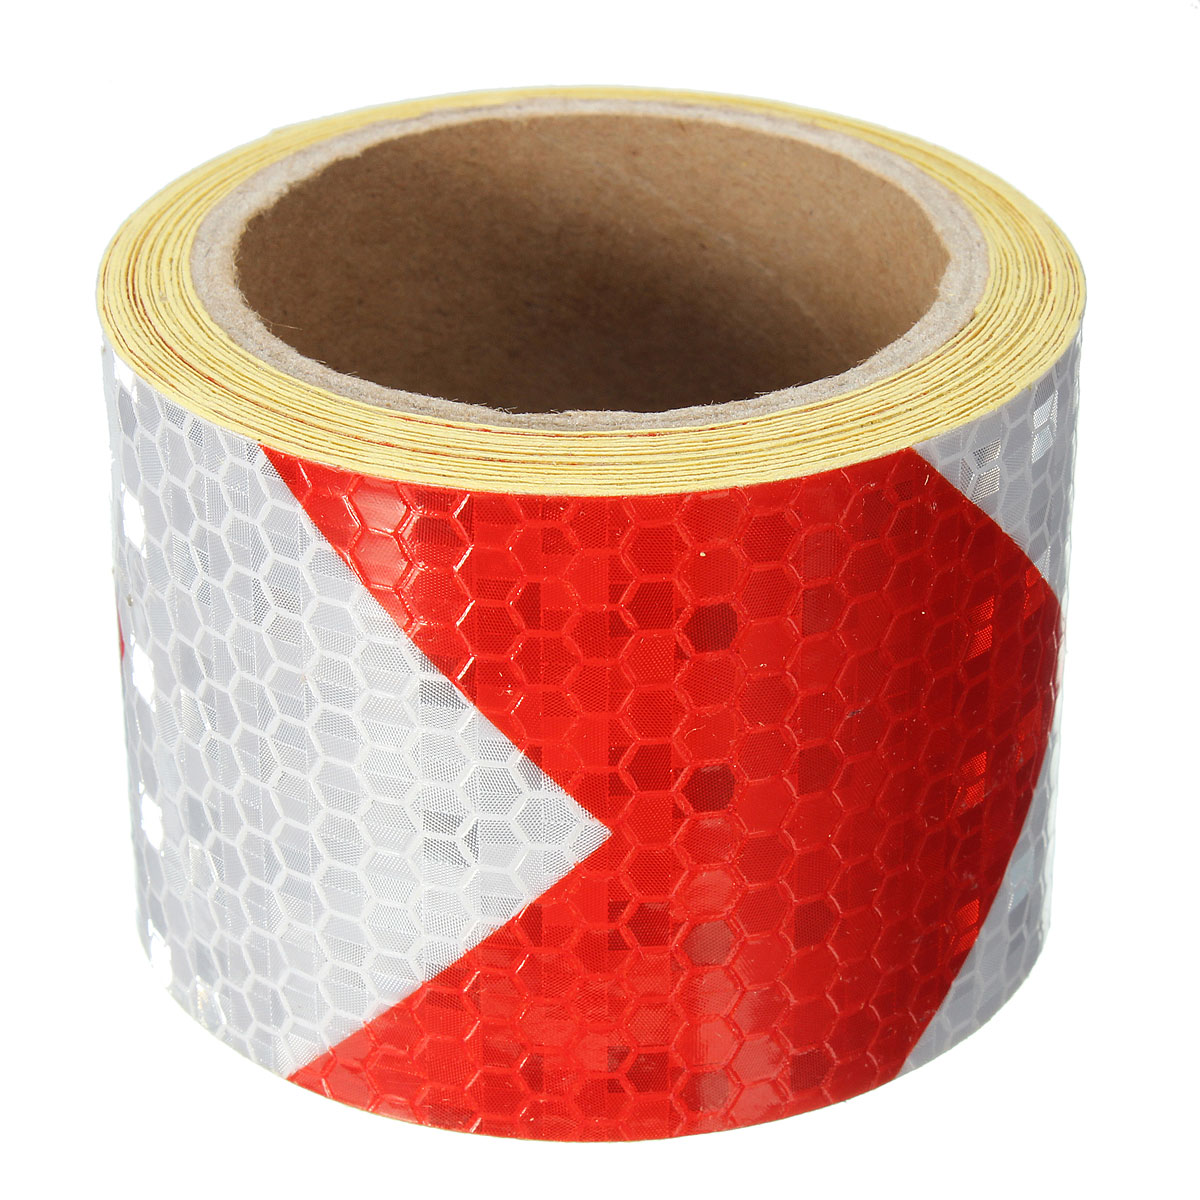 3M 5cm Types Night Reflective Safety Warning Conspicuity Tape Strip Film Sticker